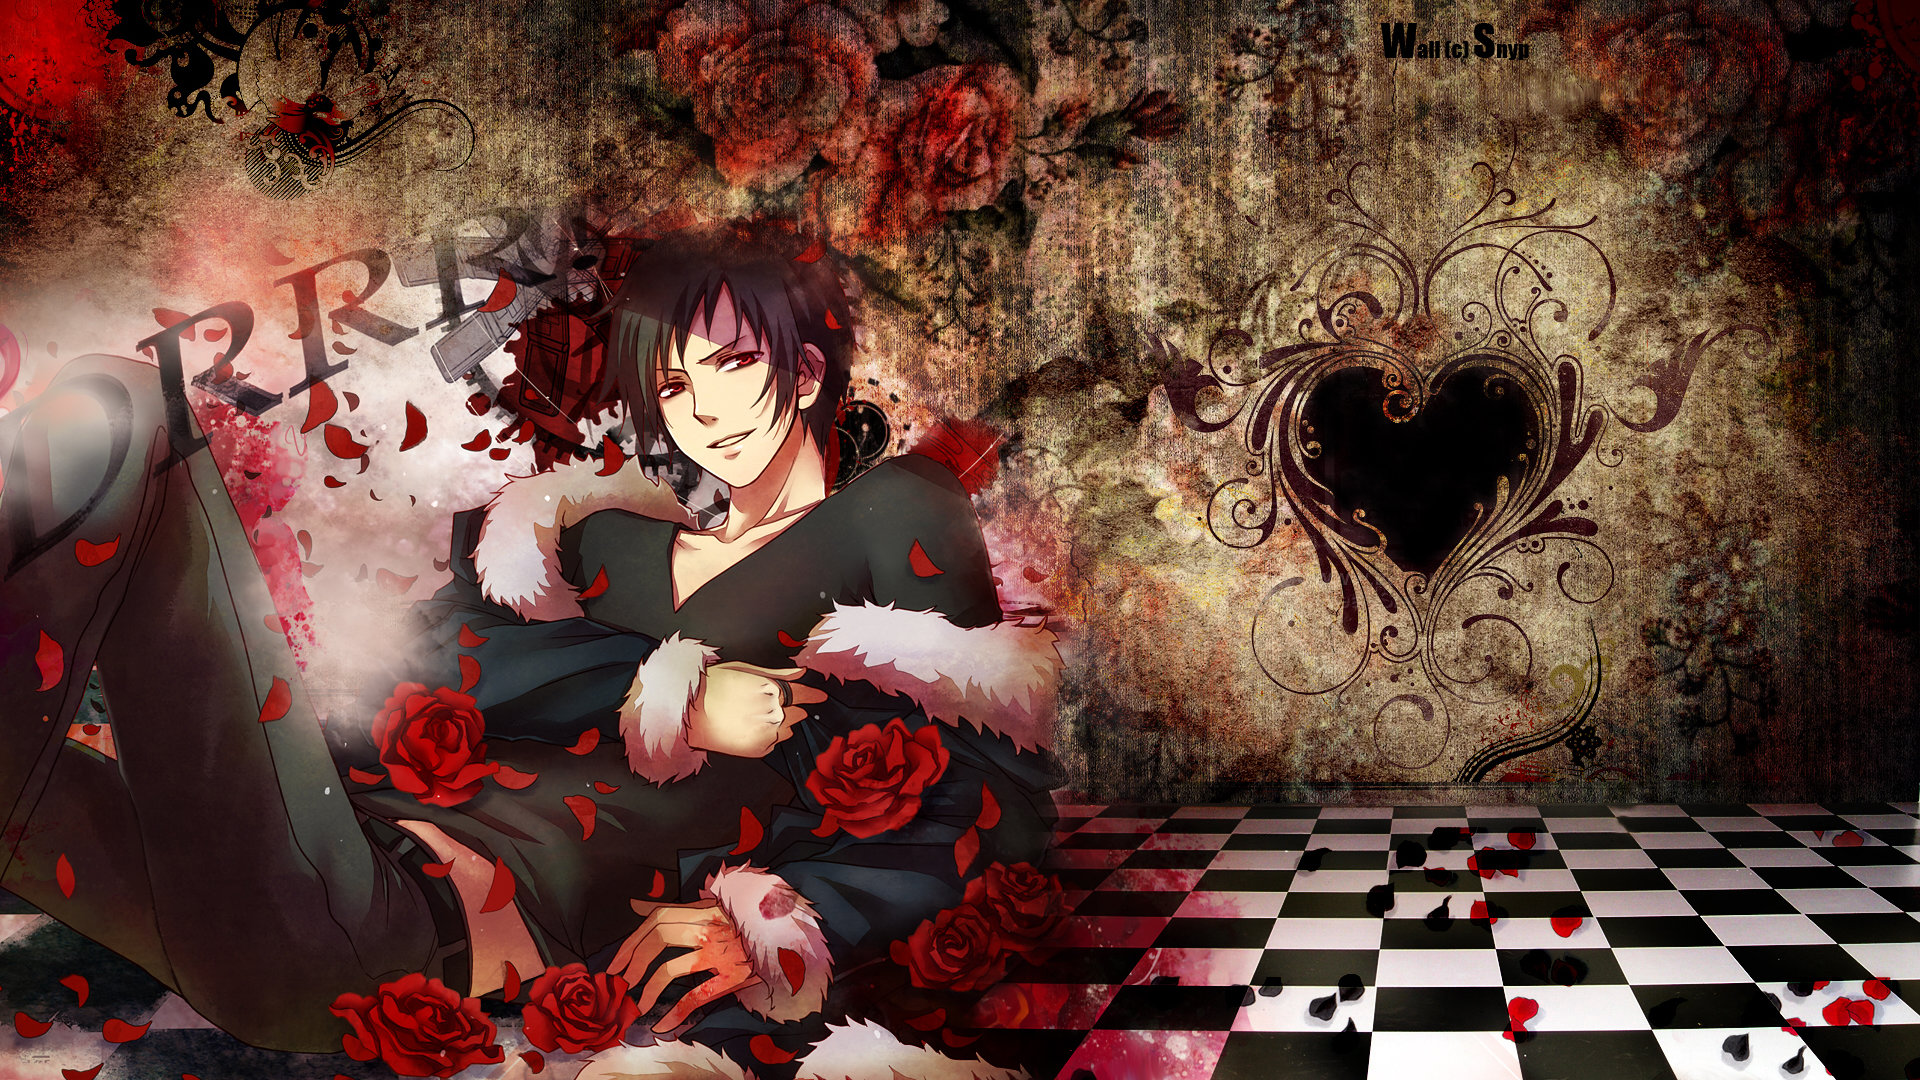 Free download Izaya Orihara background ID:321344 full hd 1920x1080 for computer